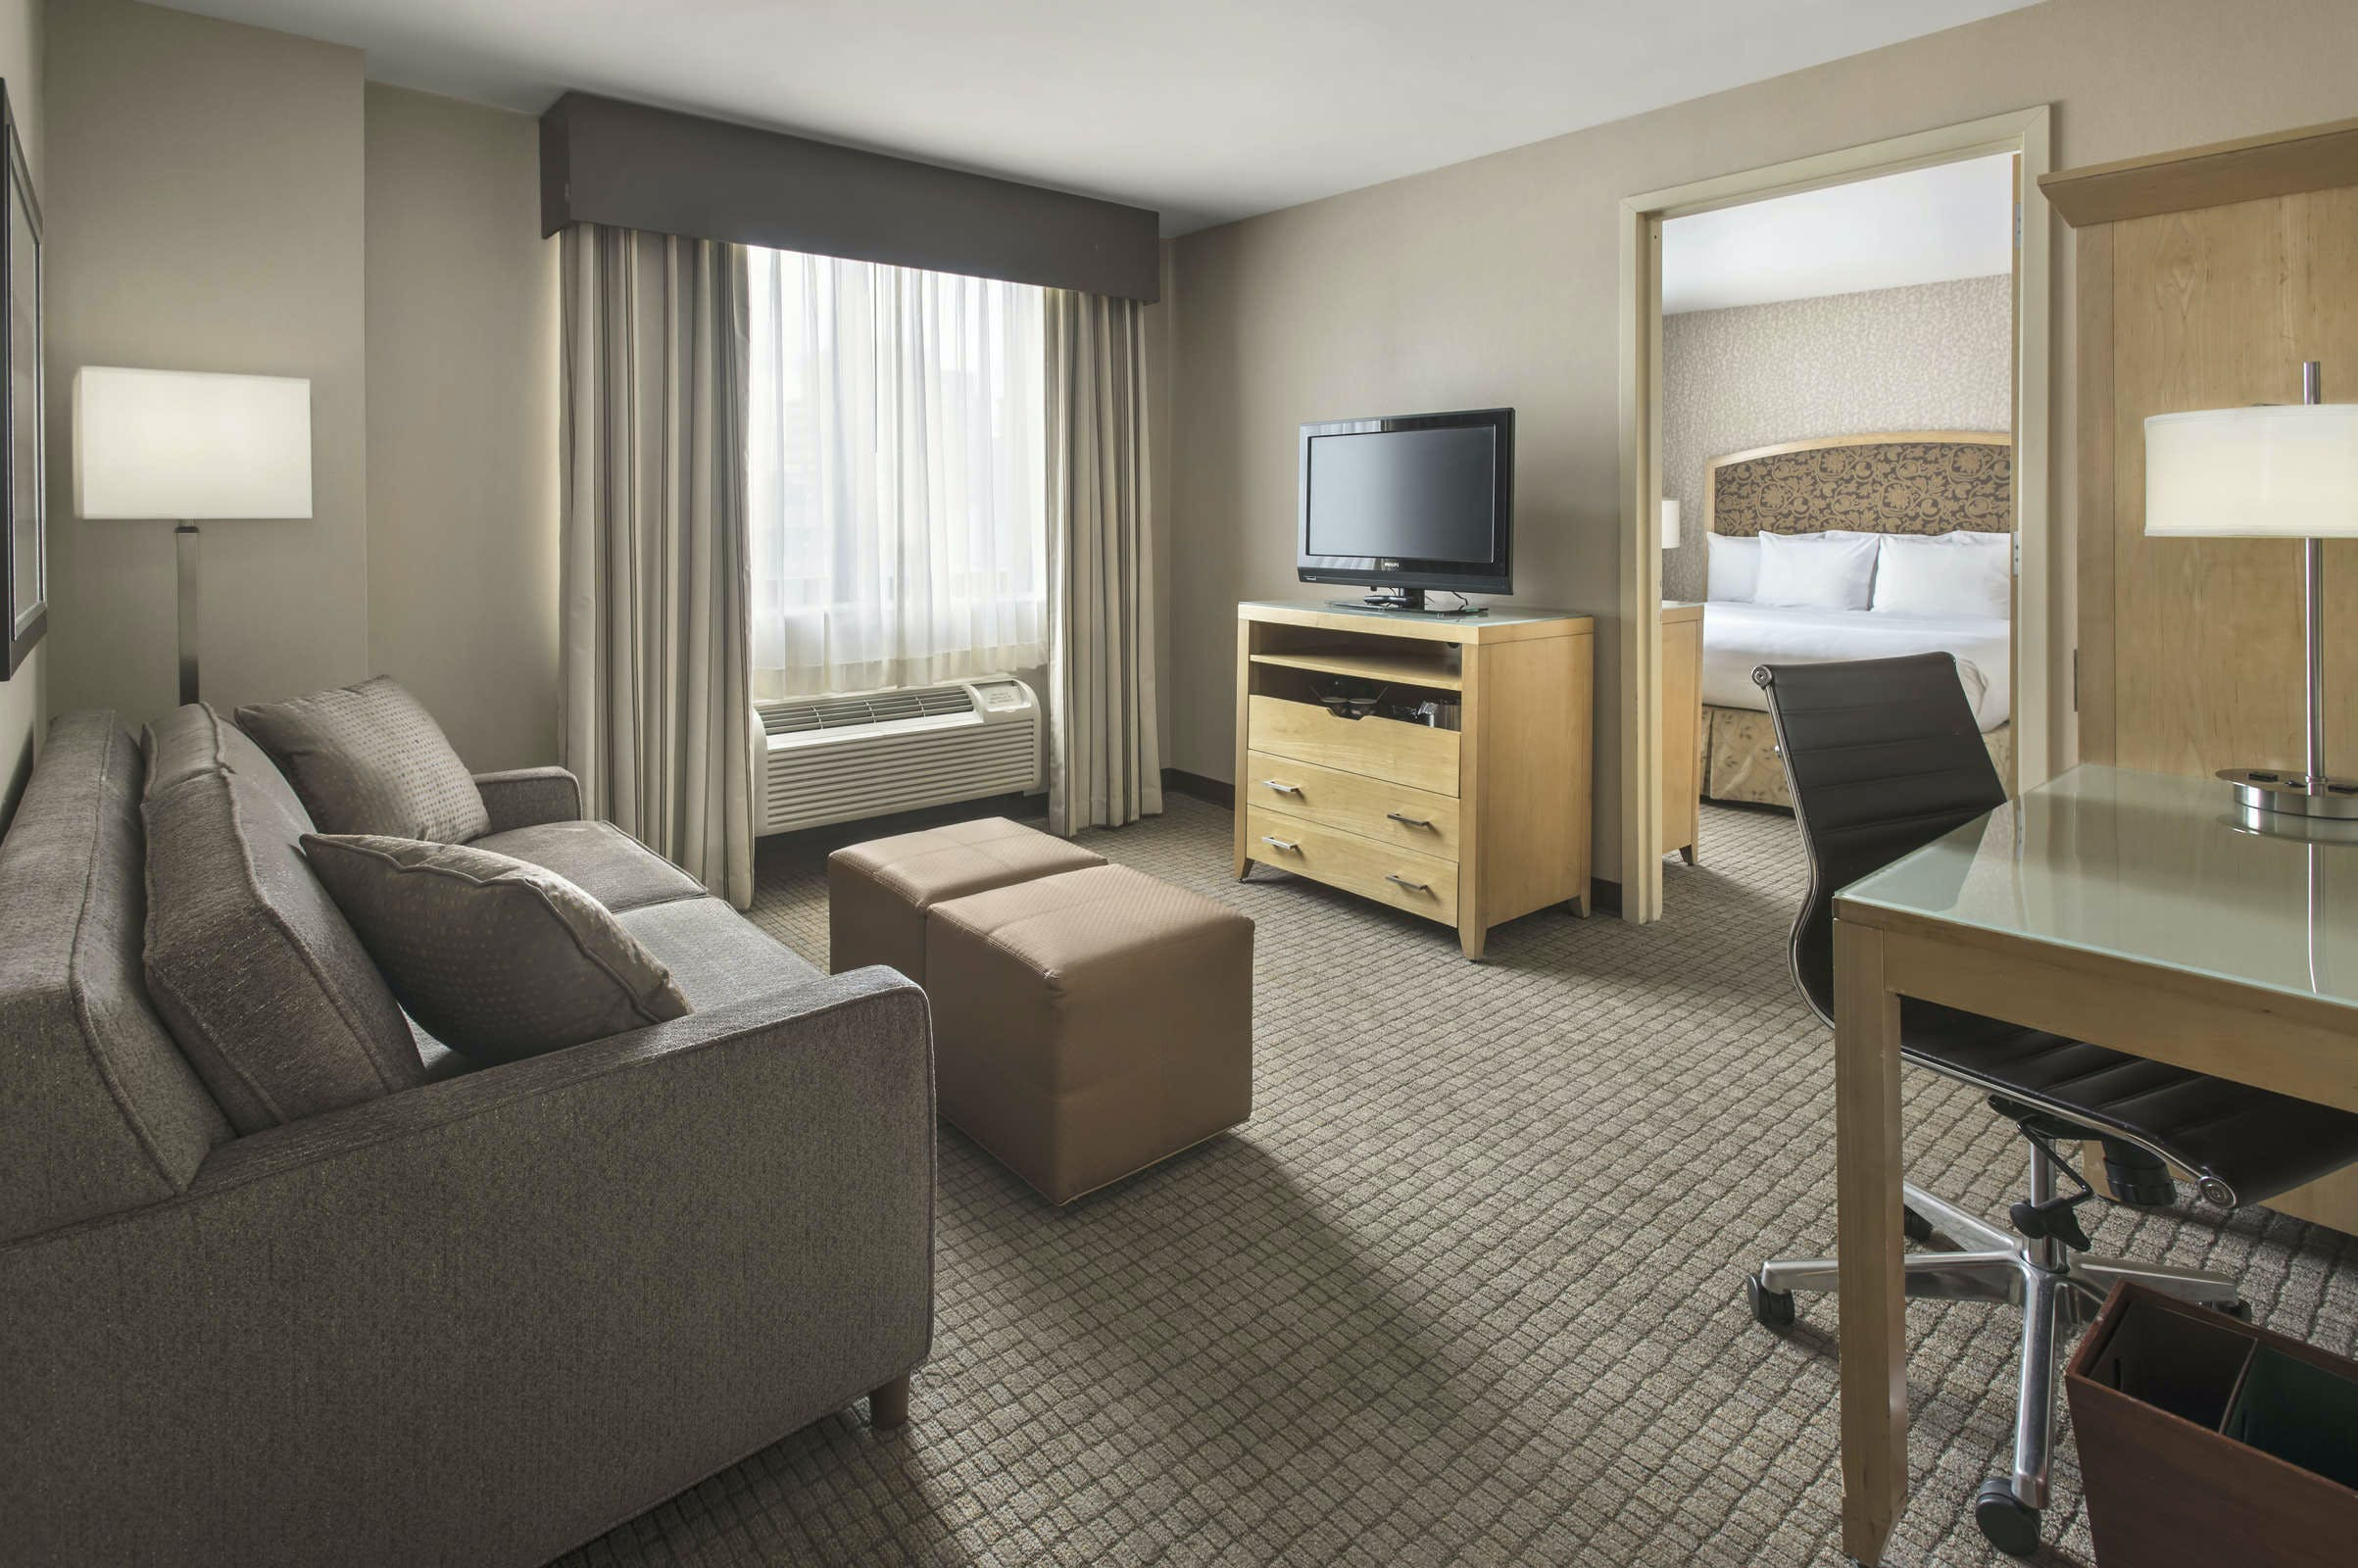 DoubleTree by Hilton Hotel New York City - Chelsea